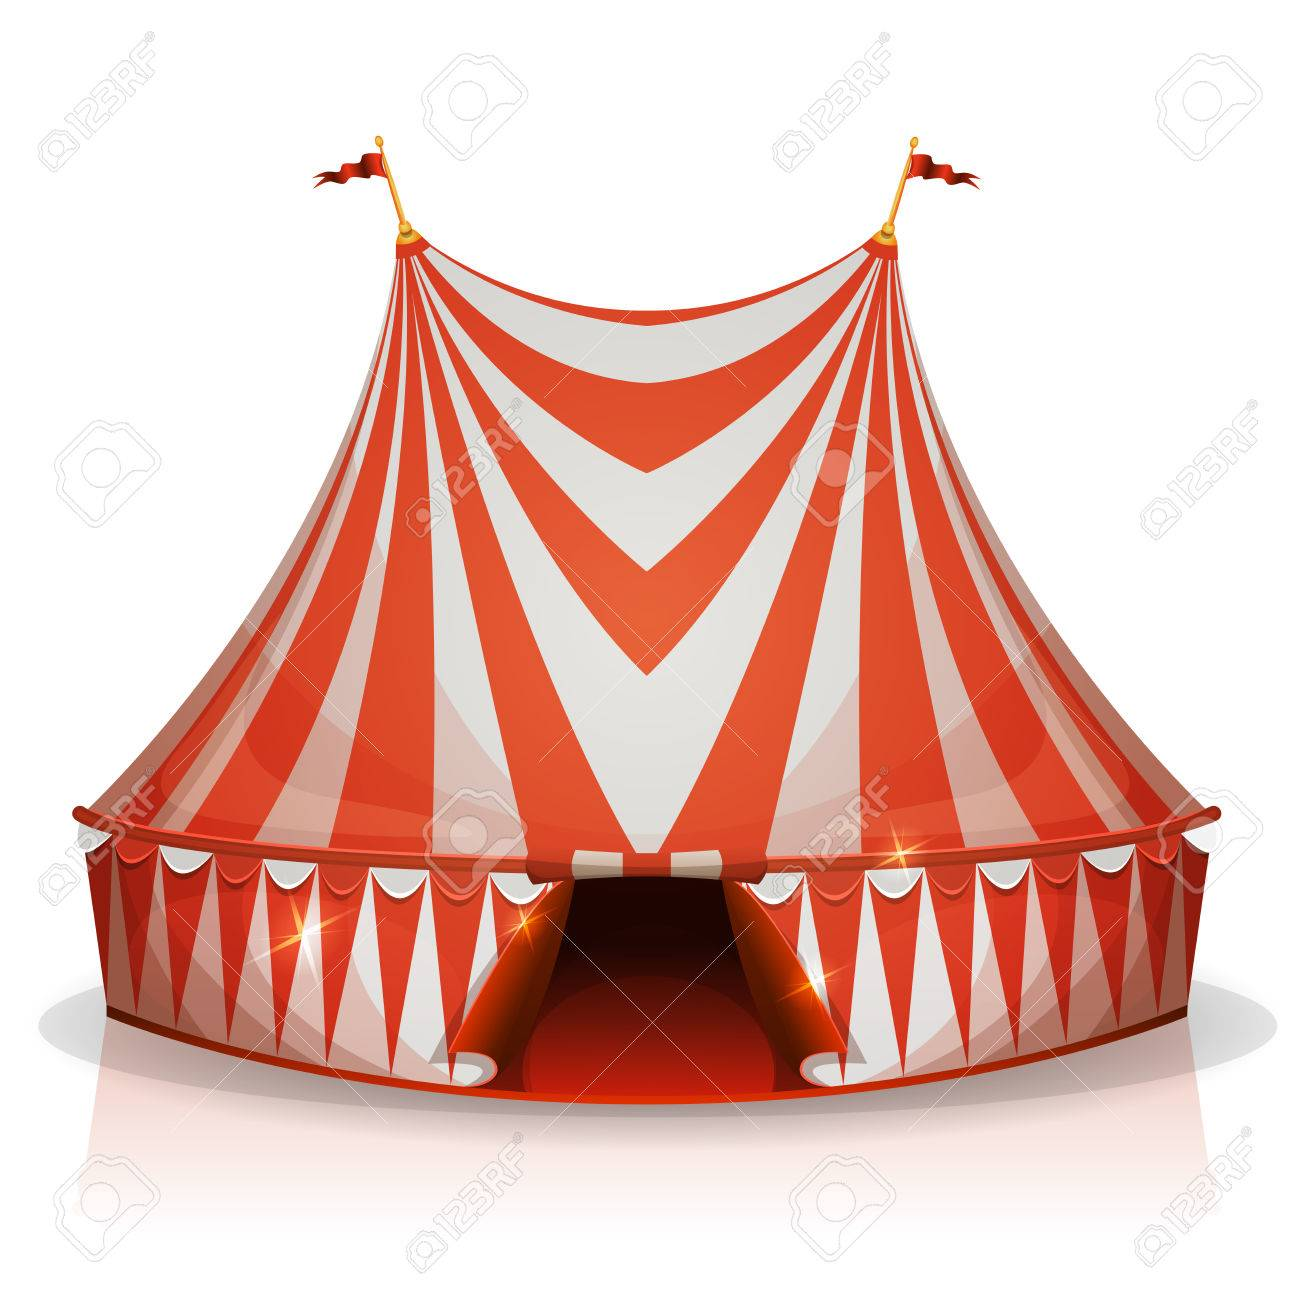 Illustration of a cartoon big top circus tent with red and white stripes for  sc 1 st  123RF Stock Photos & Illustration Of A Cartoon Big Top Circus Tent With Red And White ...